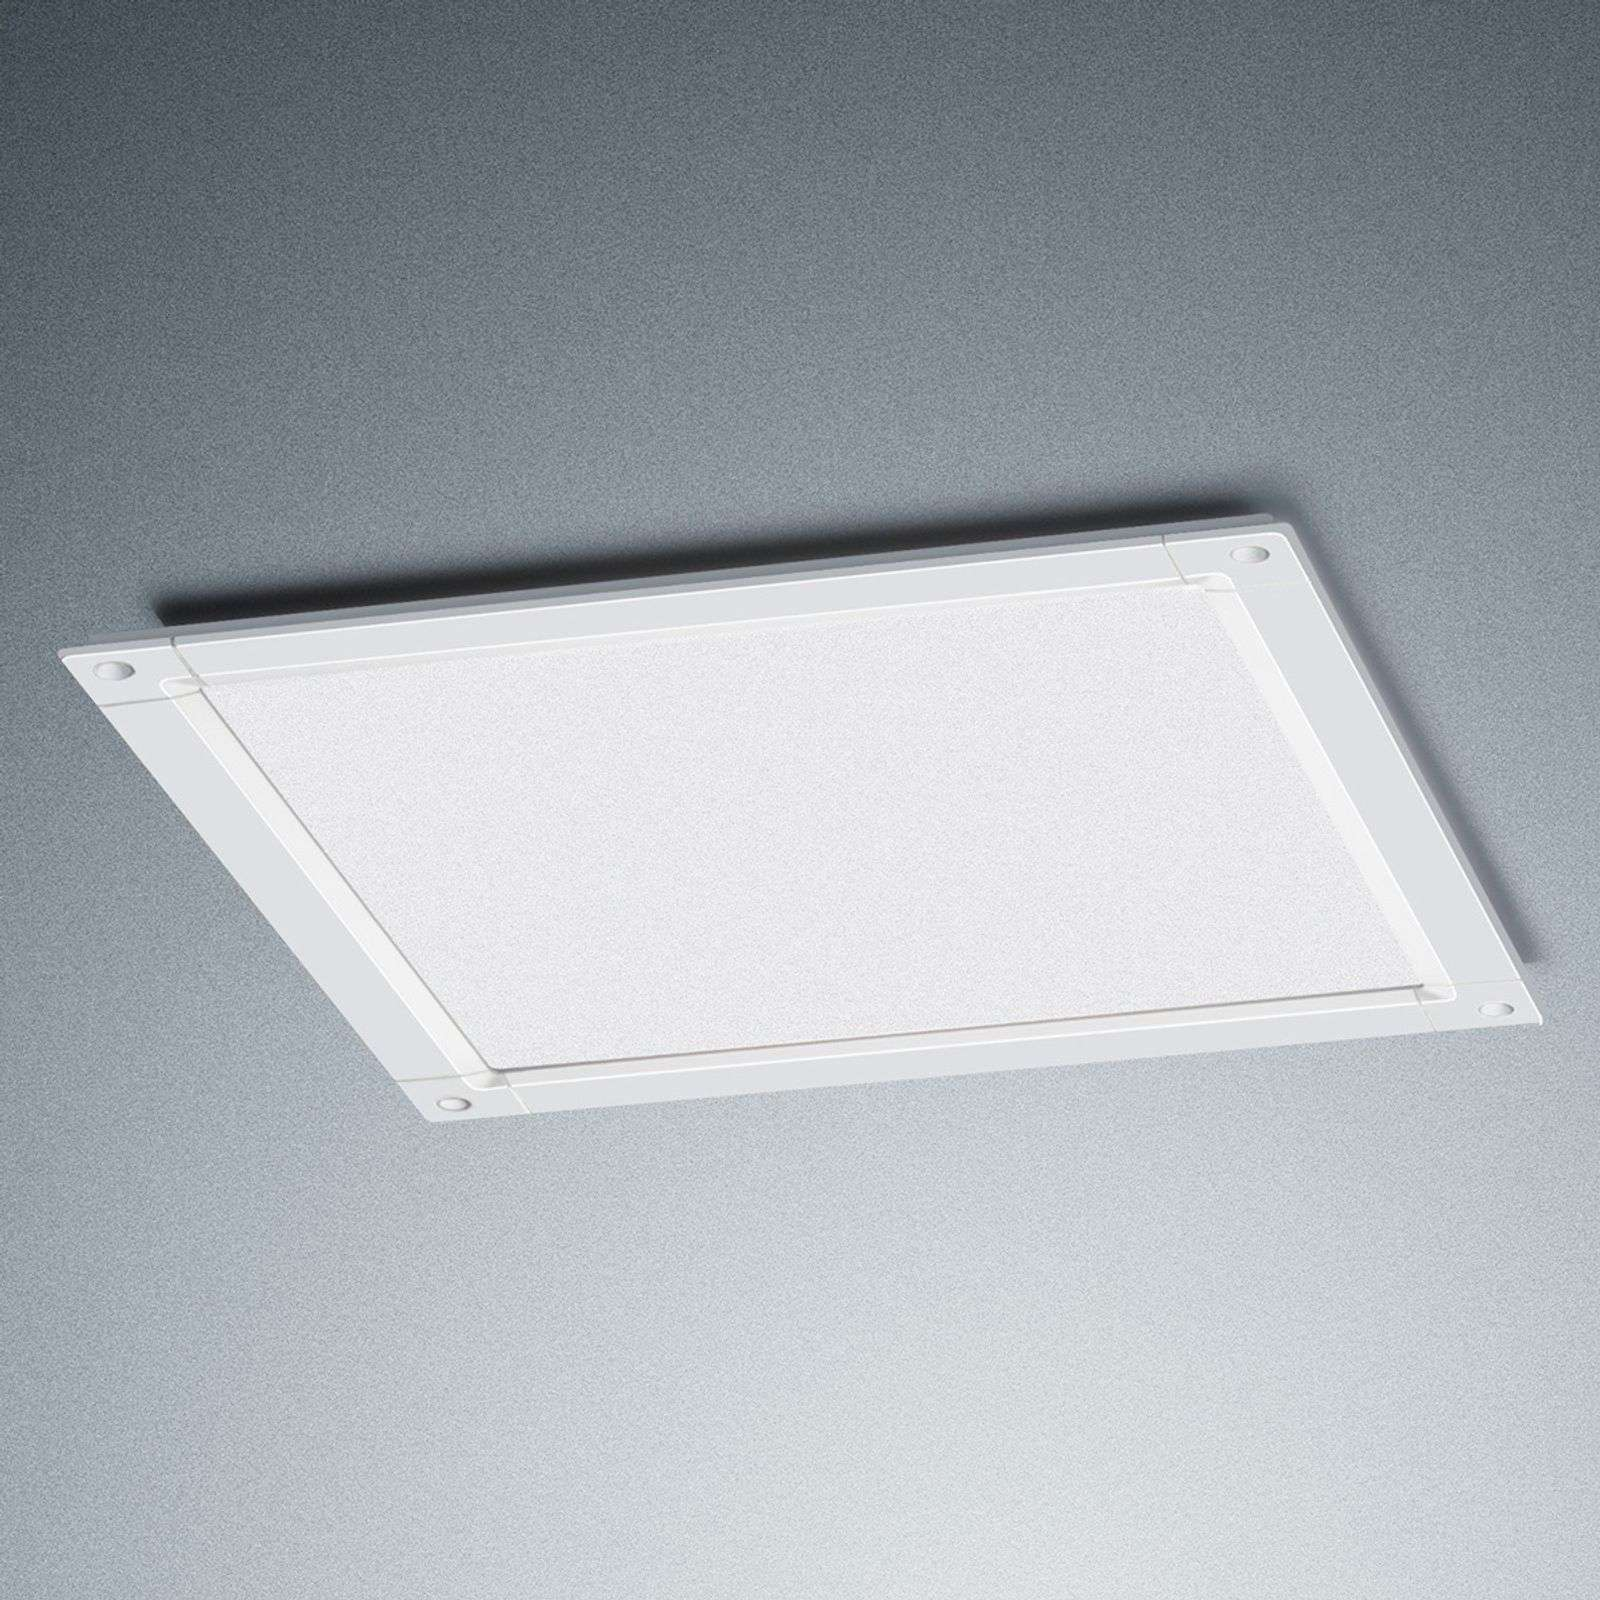 Panel LED blanco luz diurna EC 325, 1520 lúmenes